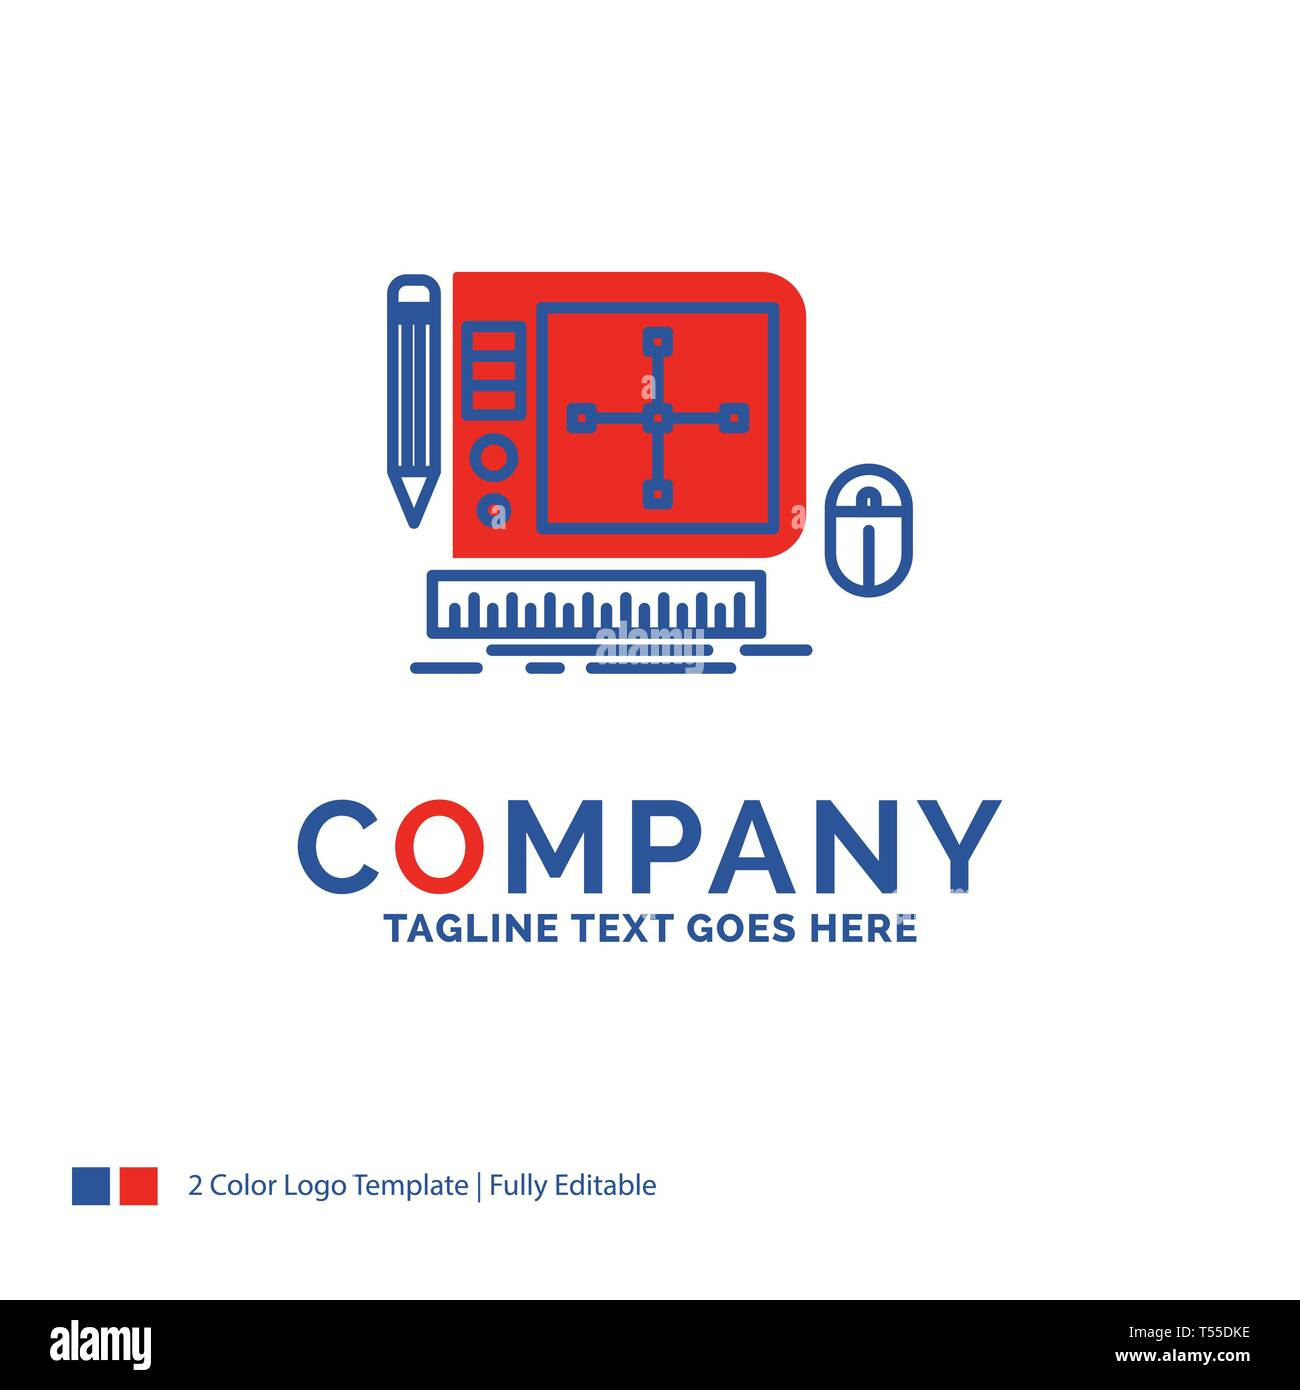 Company Name Logo Design For Design Graphic Tool Software Web Designing Blue And Red Brand Name Design With Place For Tagline Abstract Creative Stock Vector Image Art Alamy